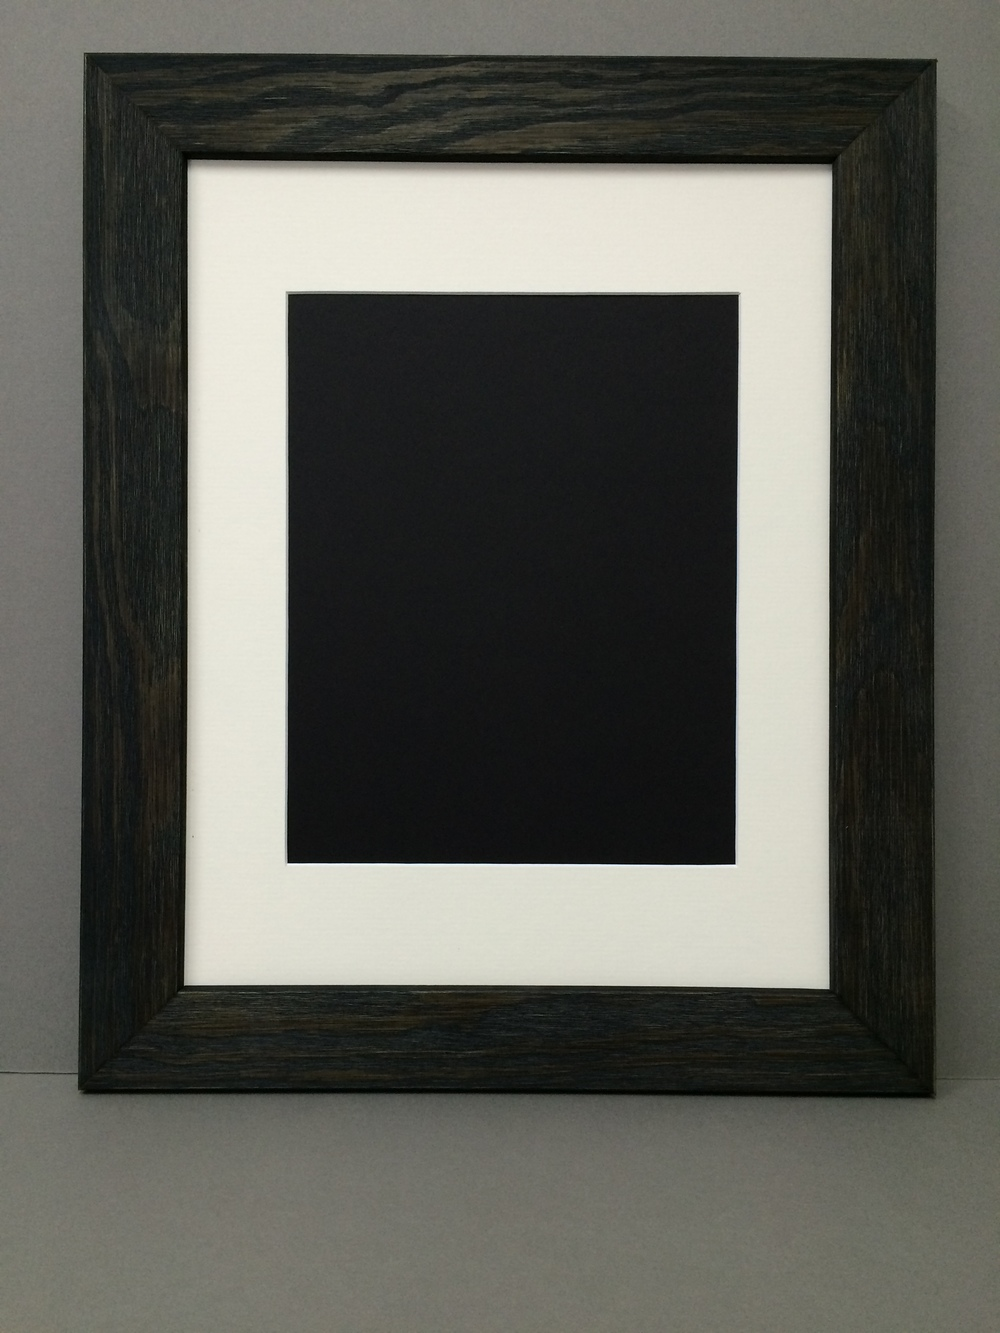 11x14 1 75 rustic black frame with single mat for 8x10 picture